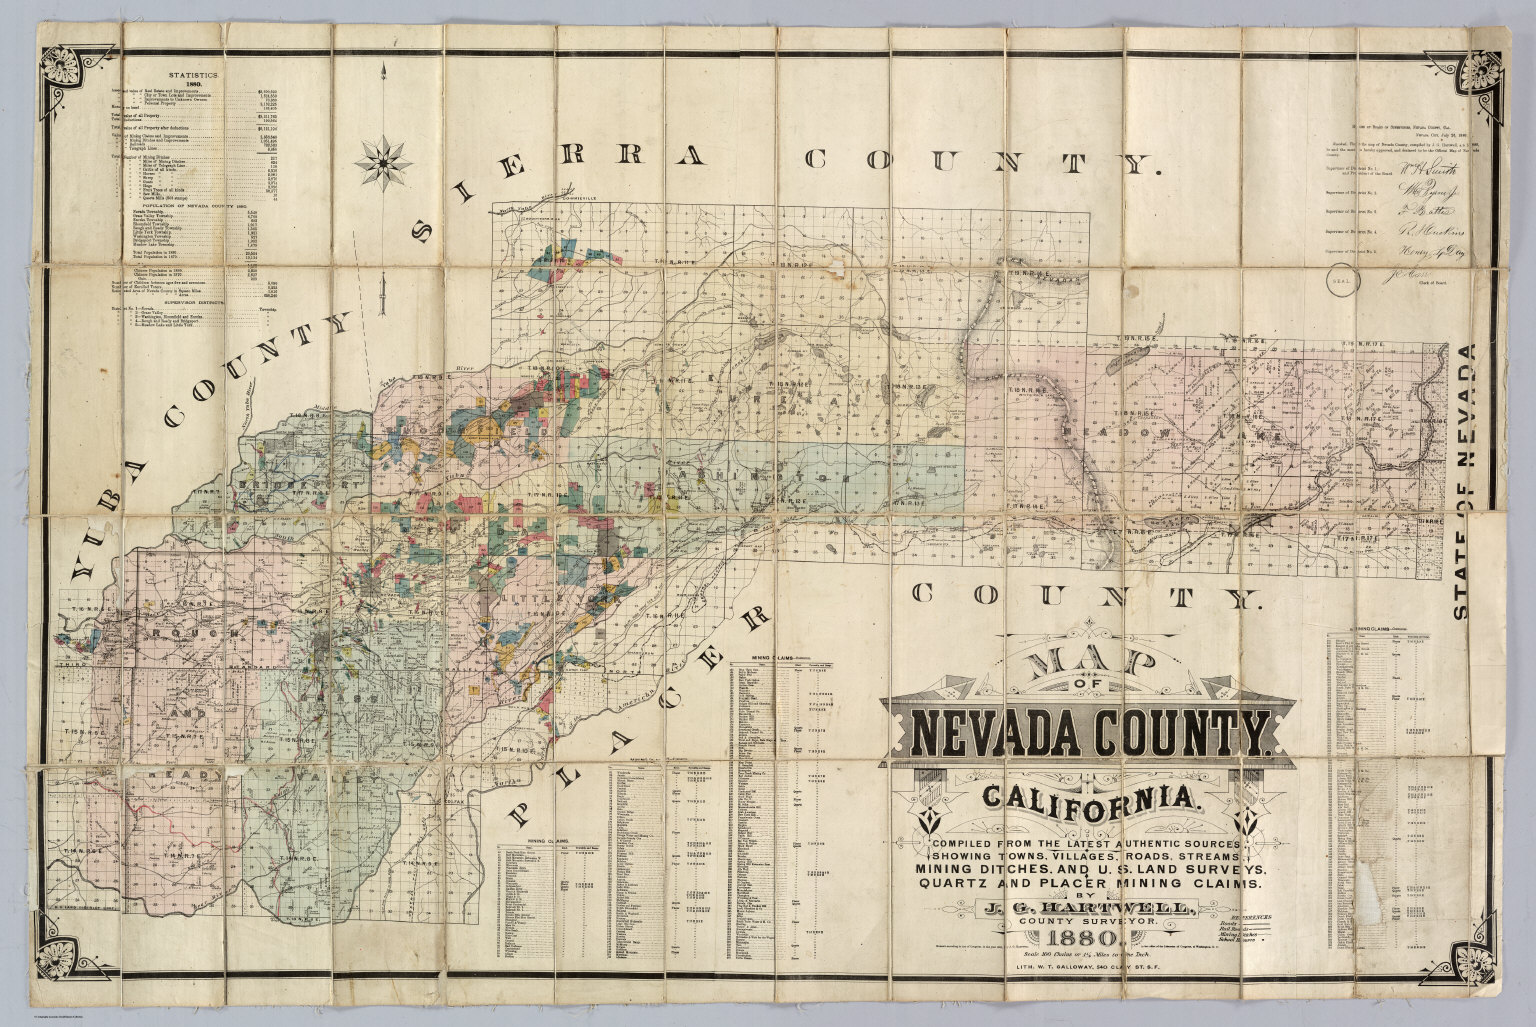 Nevada County California David Rumsey Historical Map Collection